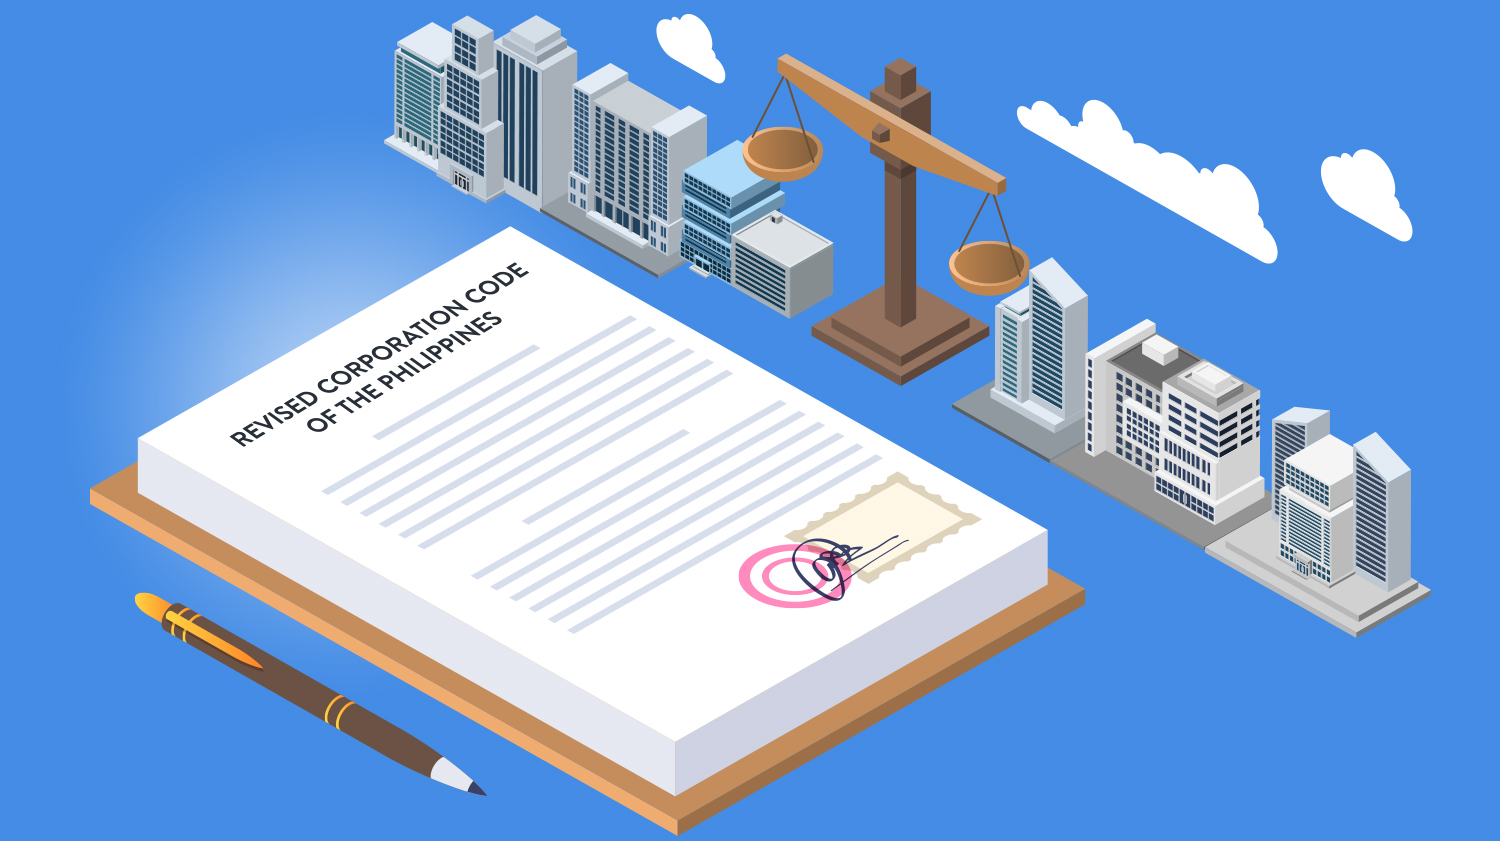 Signed, Sealed, Delivered: The Revised Corporation Code of the Philippines has arrived – How might it affect your business?